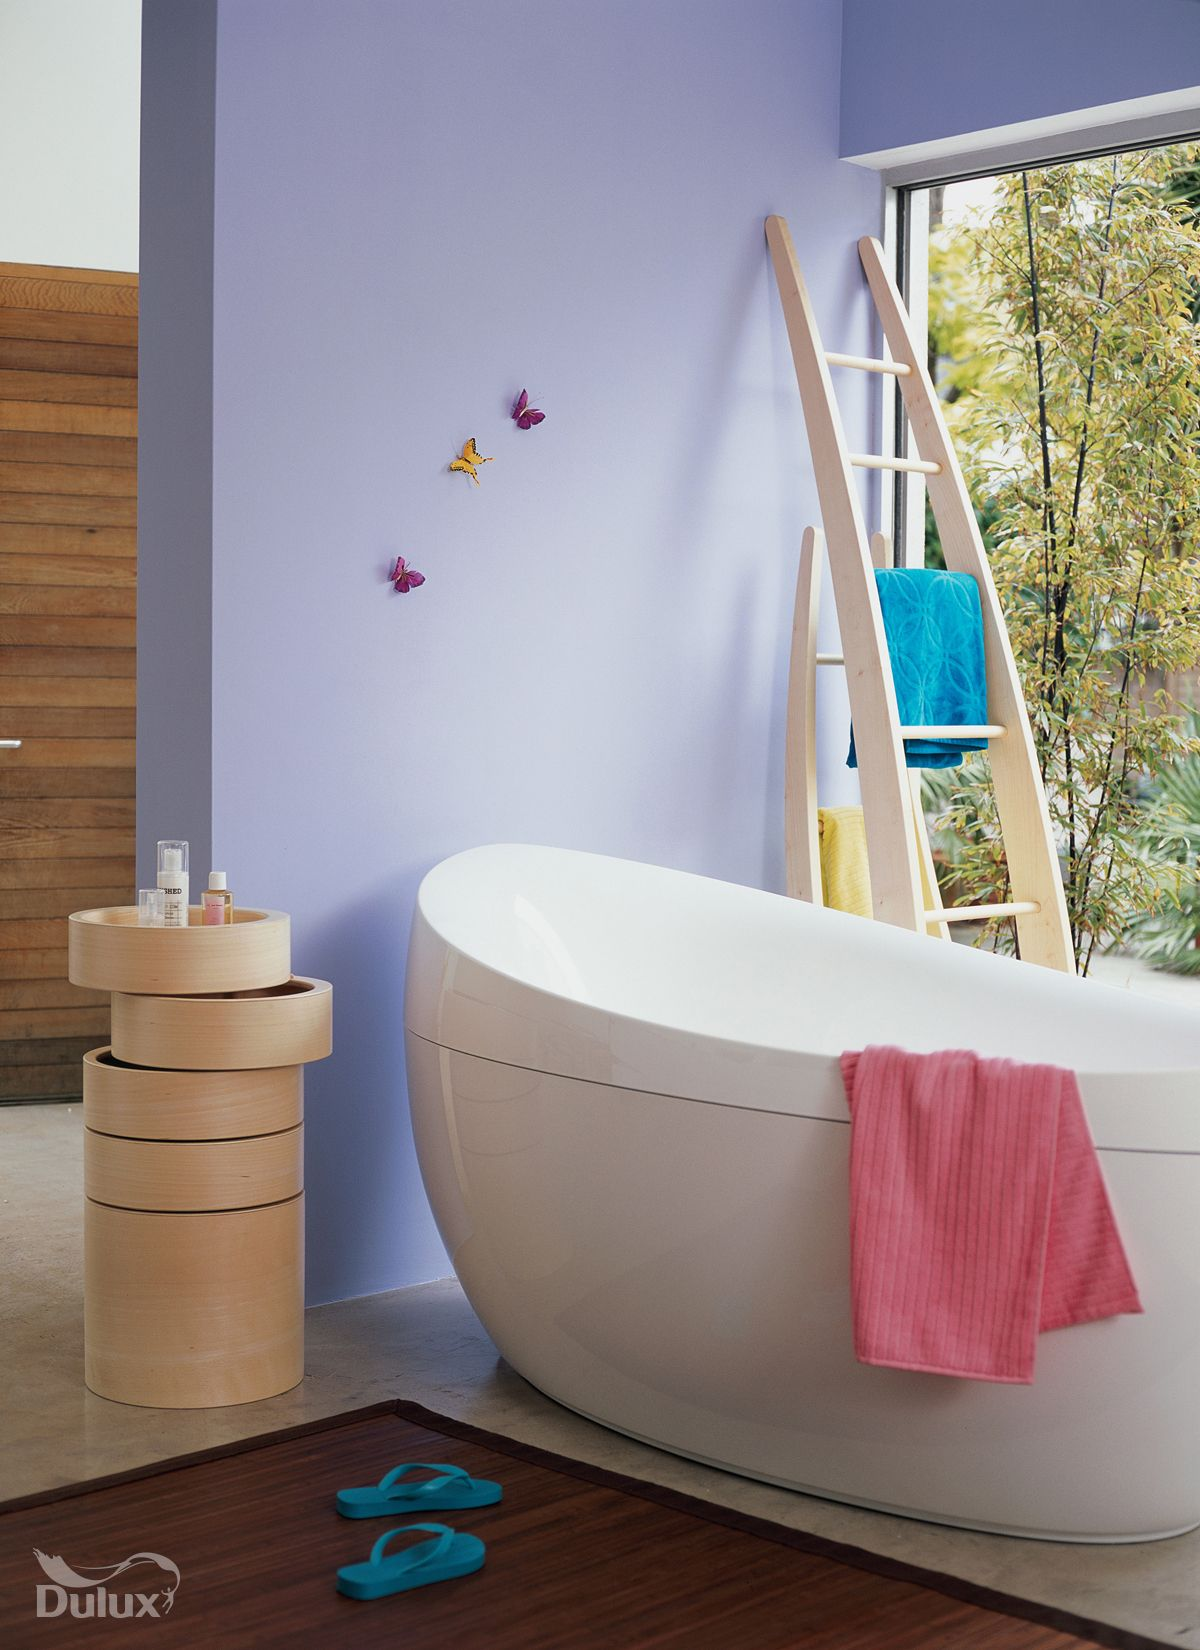 Dulux bathroom ideas - Find This Pin And More On Painting Ideas